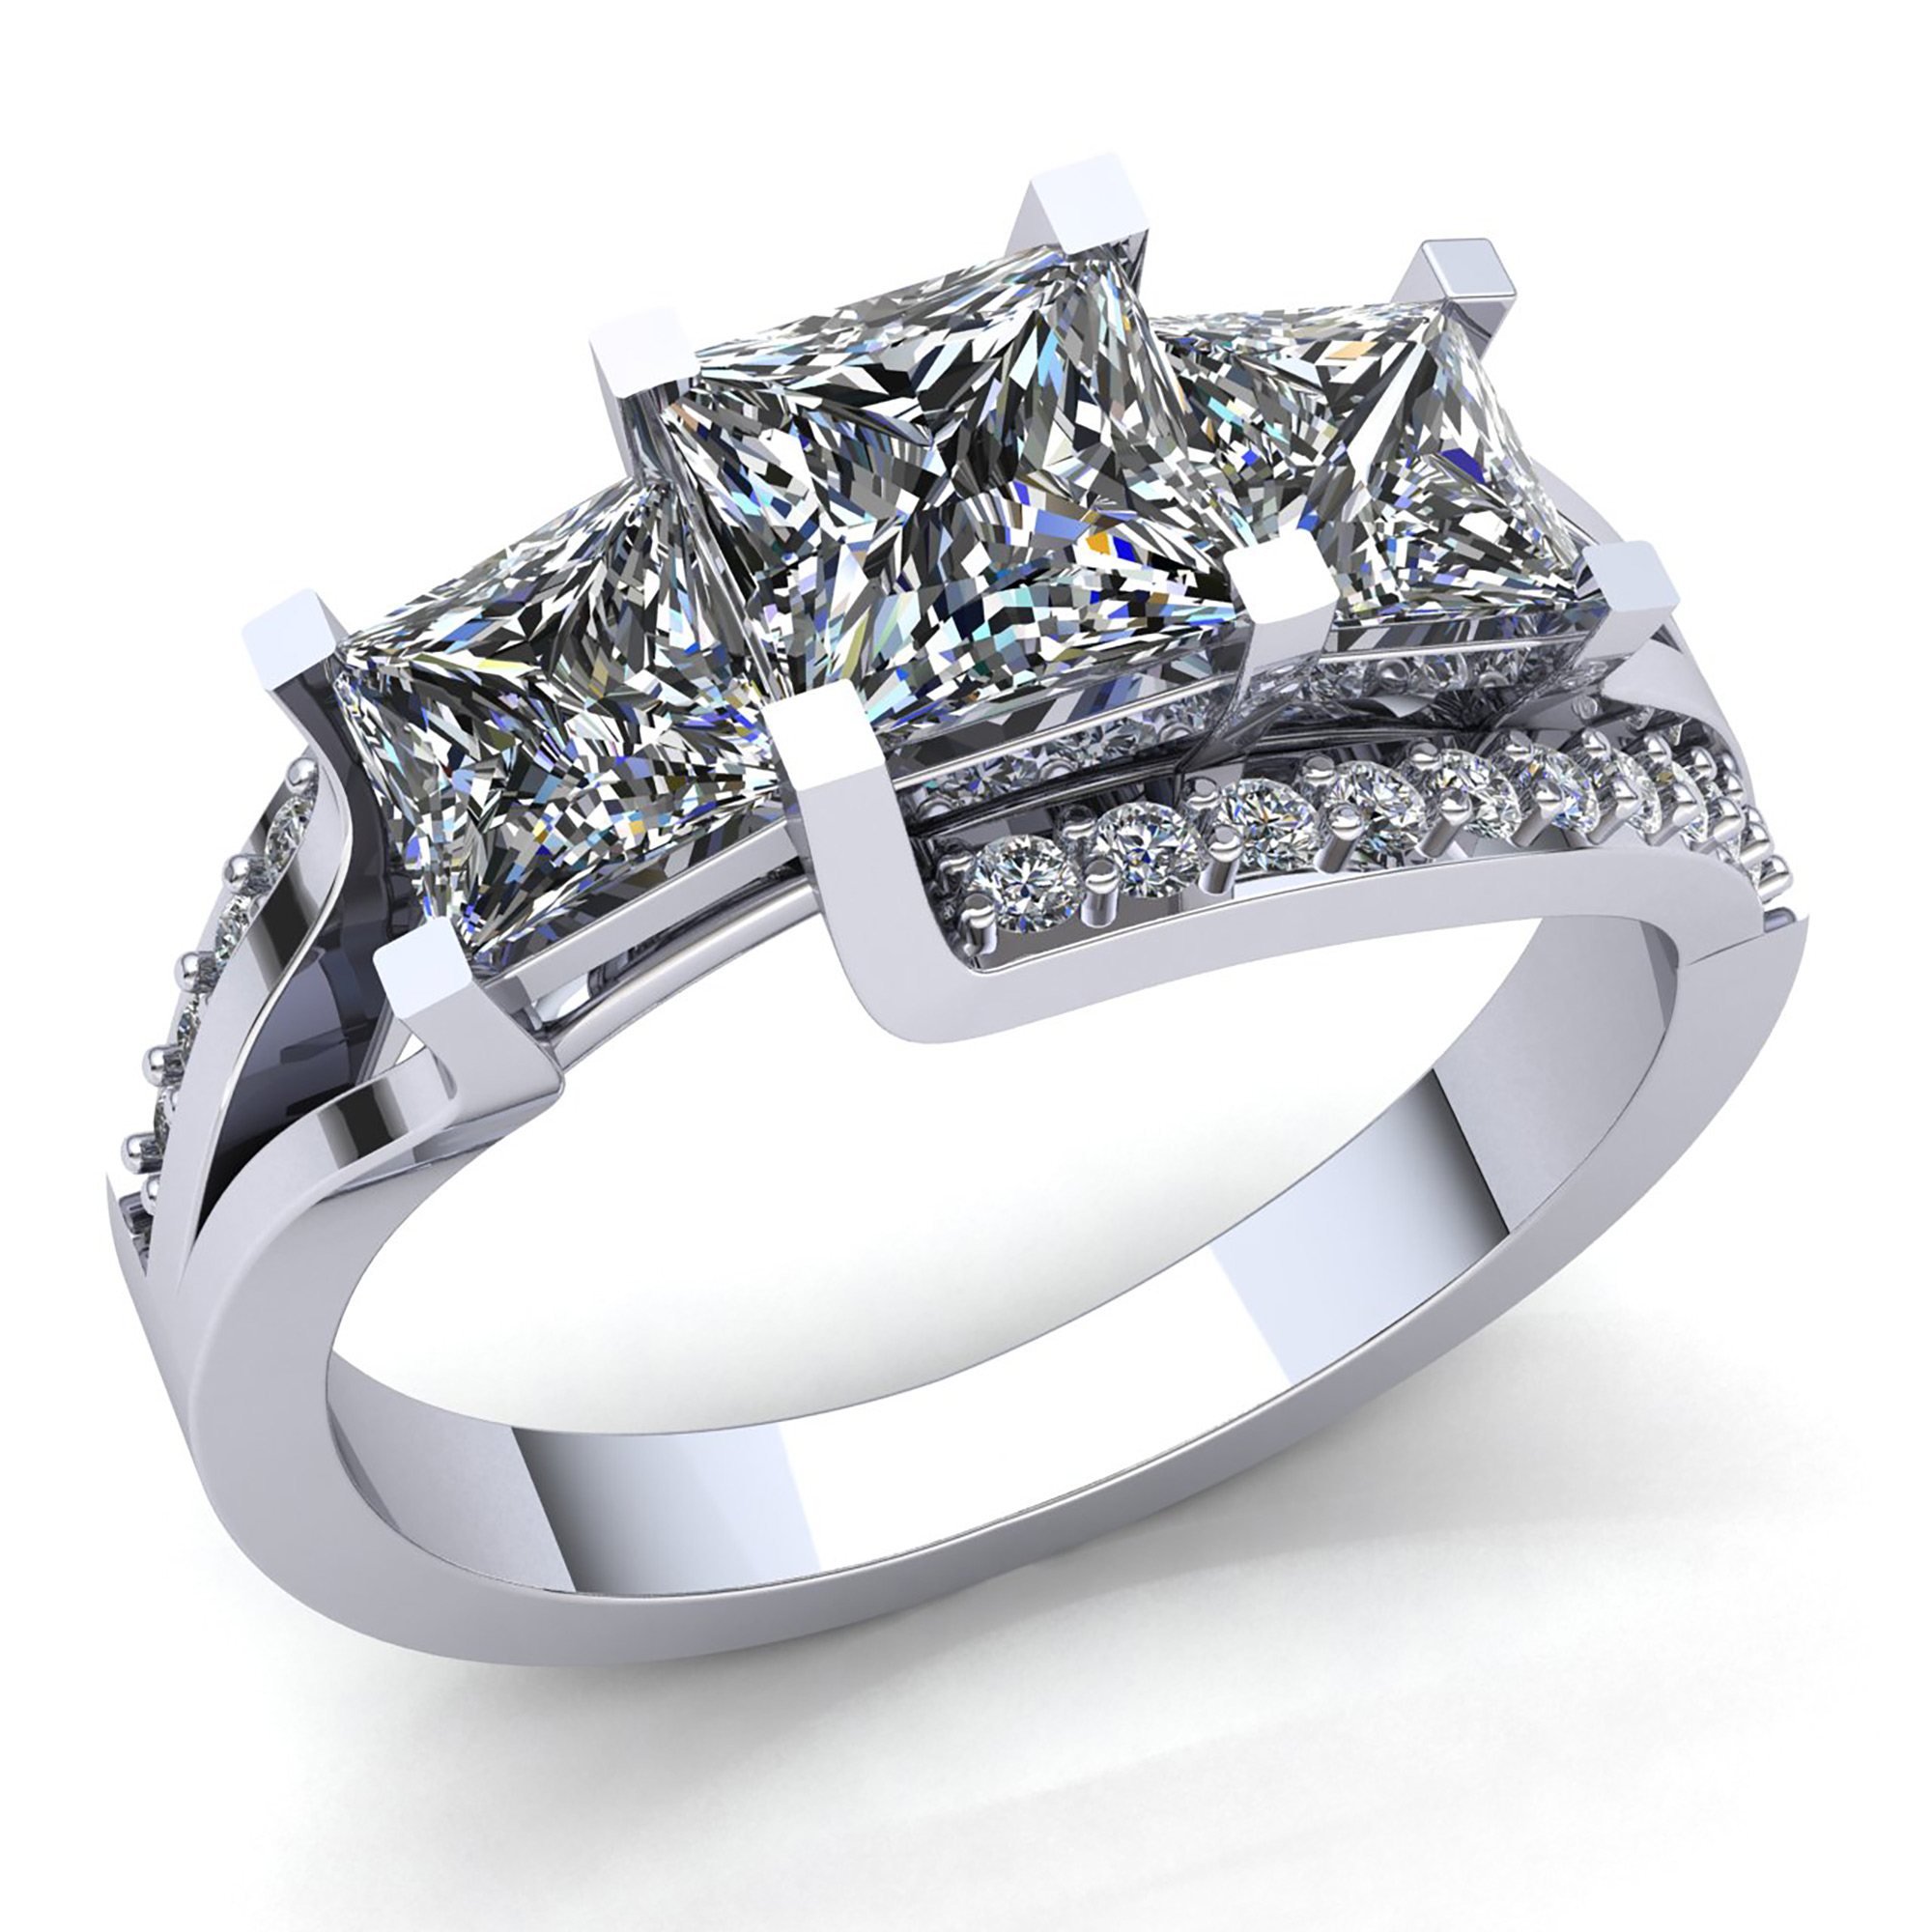 ring present future jewelry rings past wedding pawn diamond regal shop